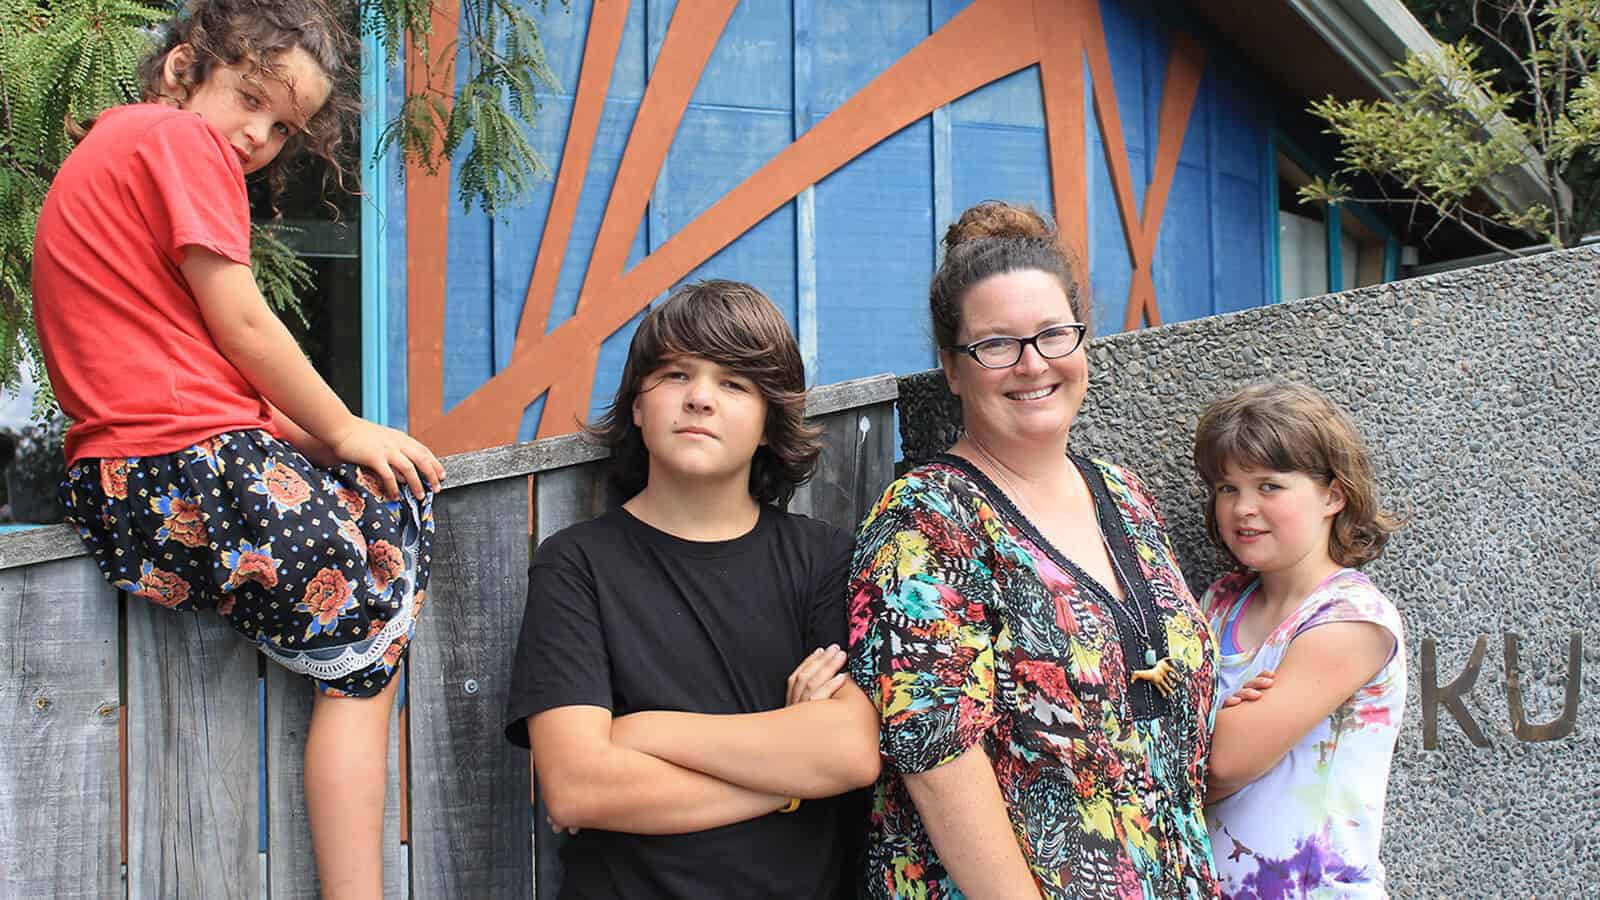 From left: Willoughby (7), Baxter (12) and Isabella (11) with mum Jess